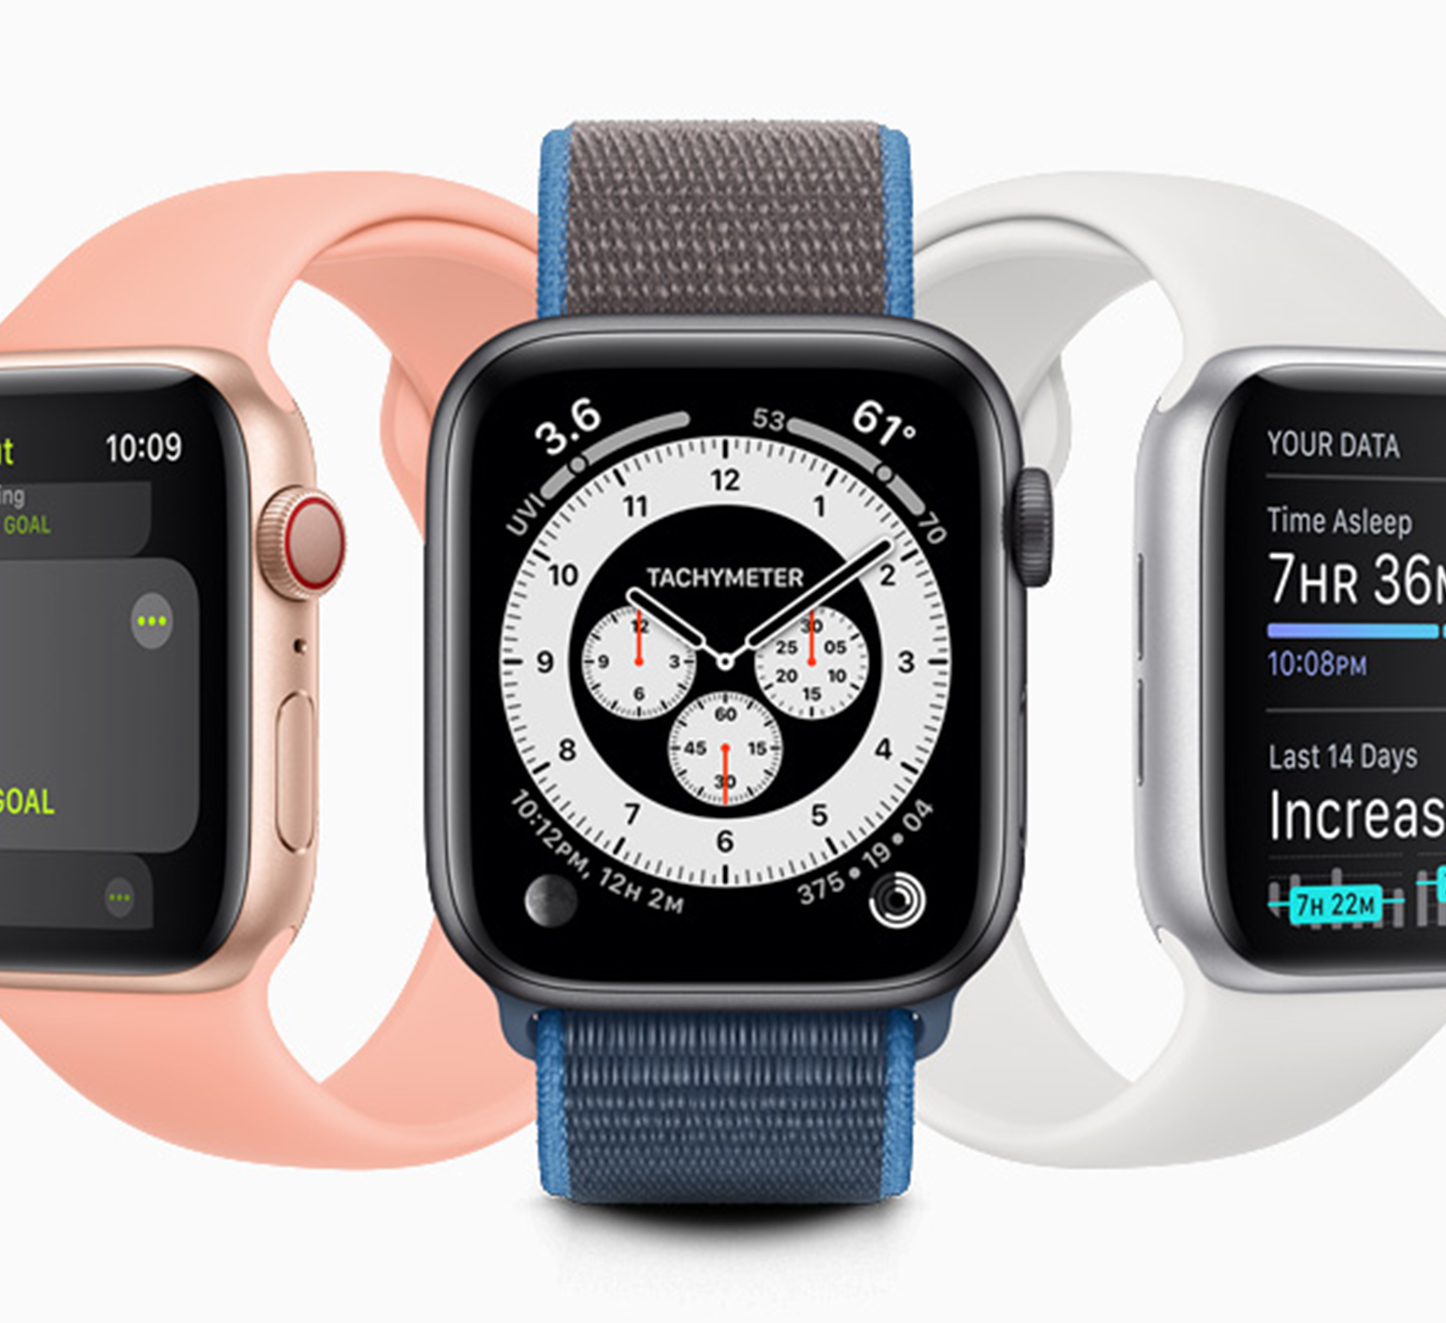 Die wichtigsten Features der Apple Watch Series 6